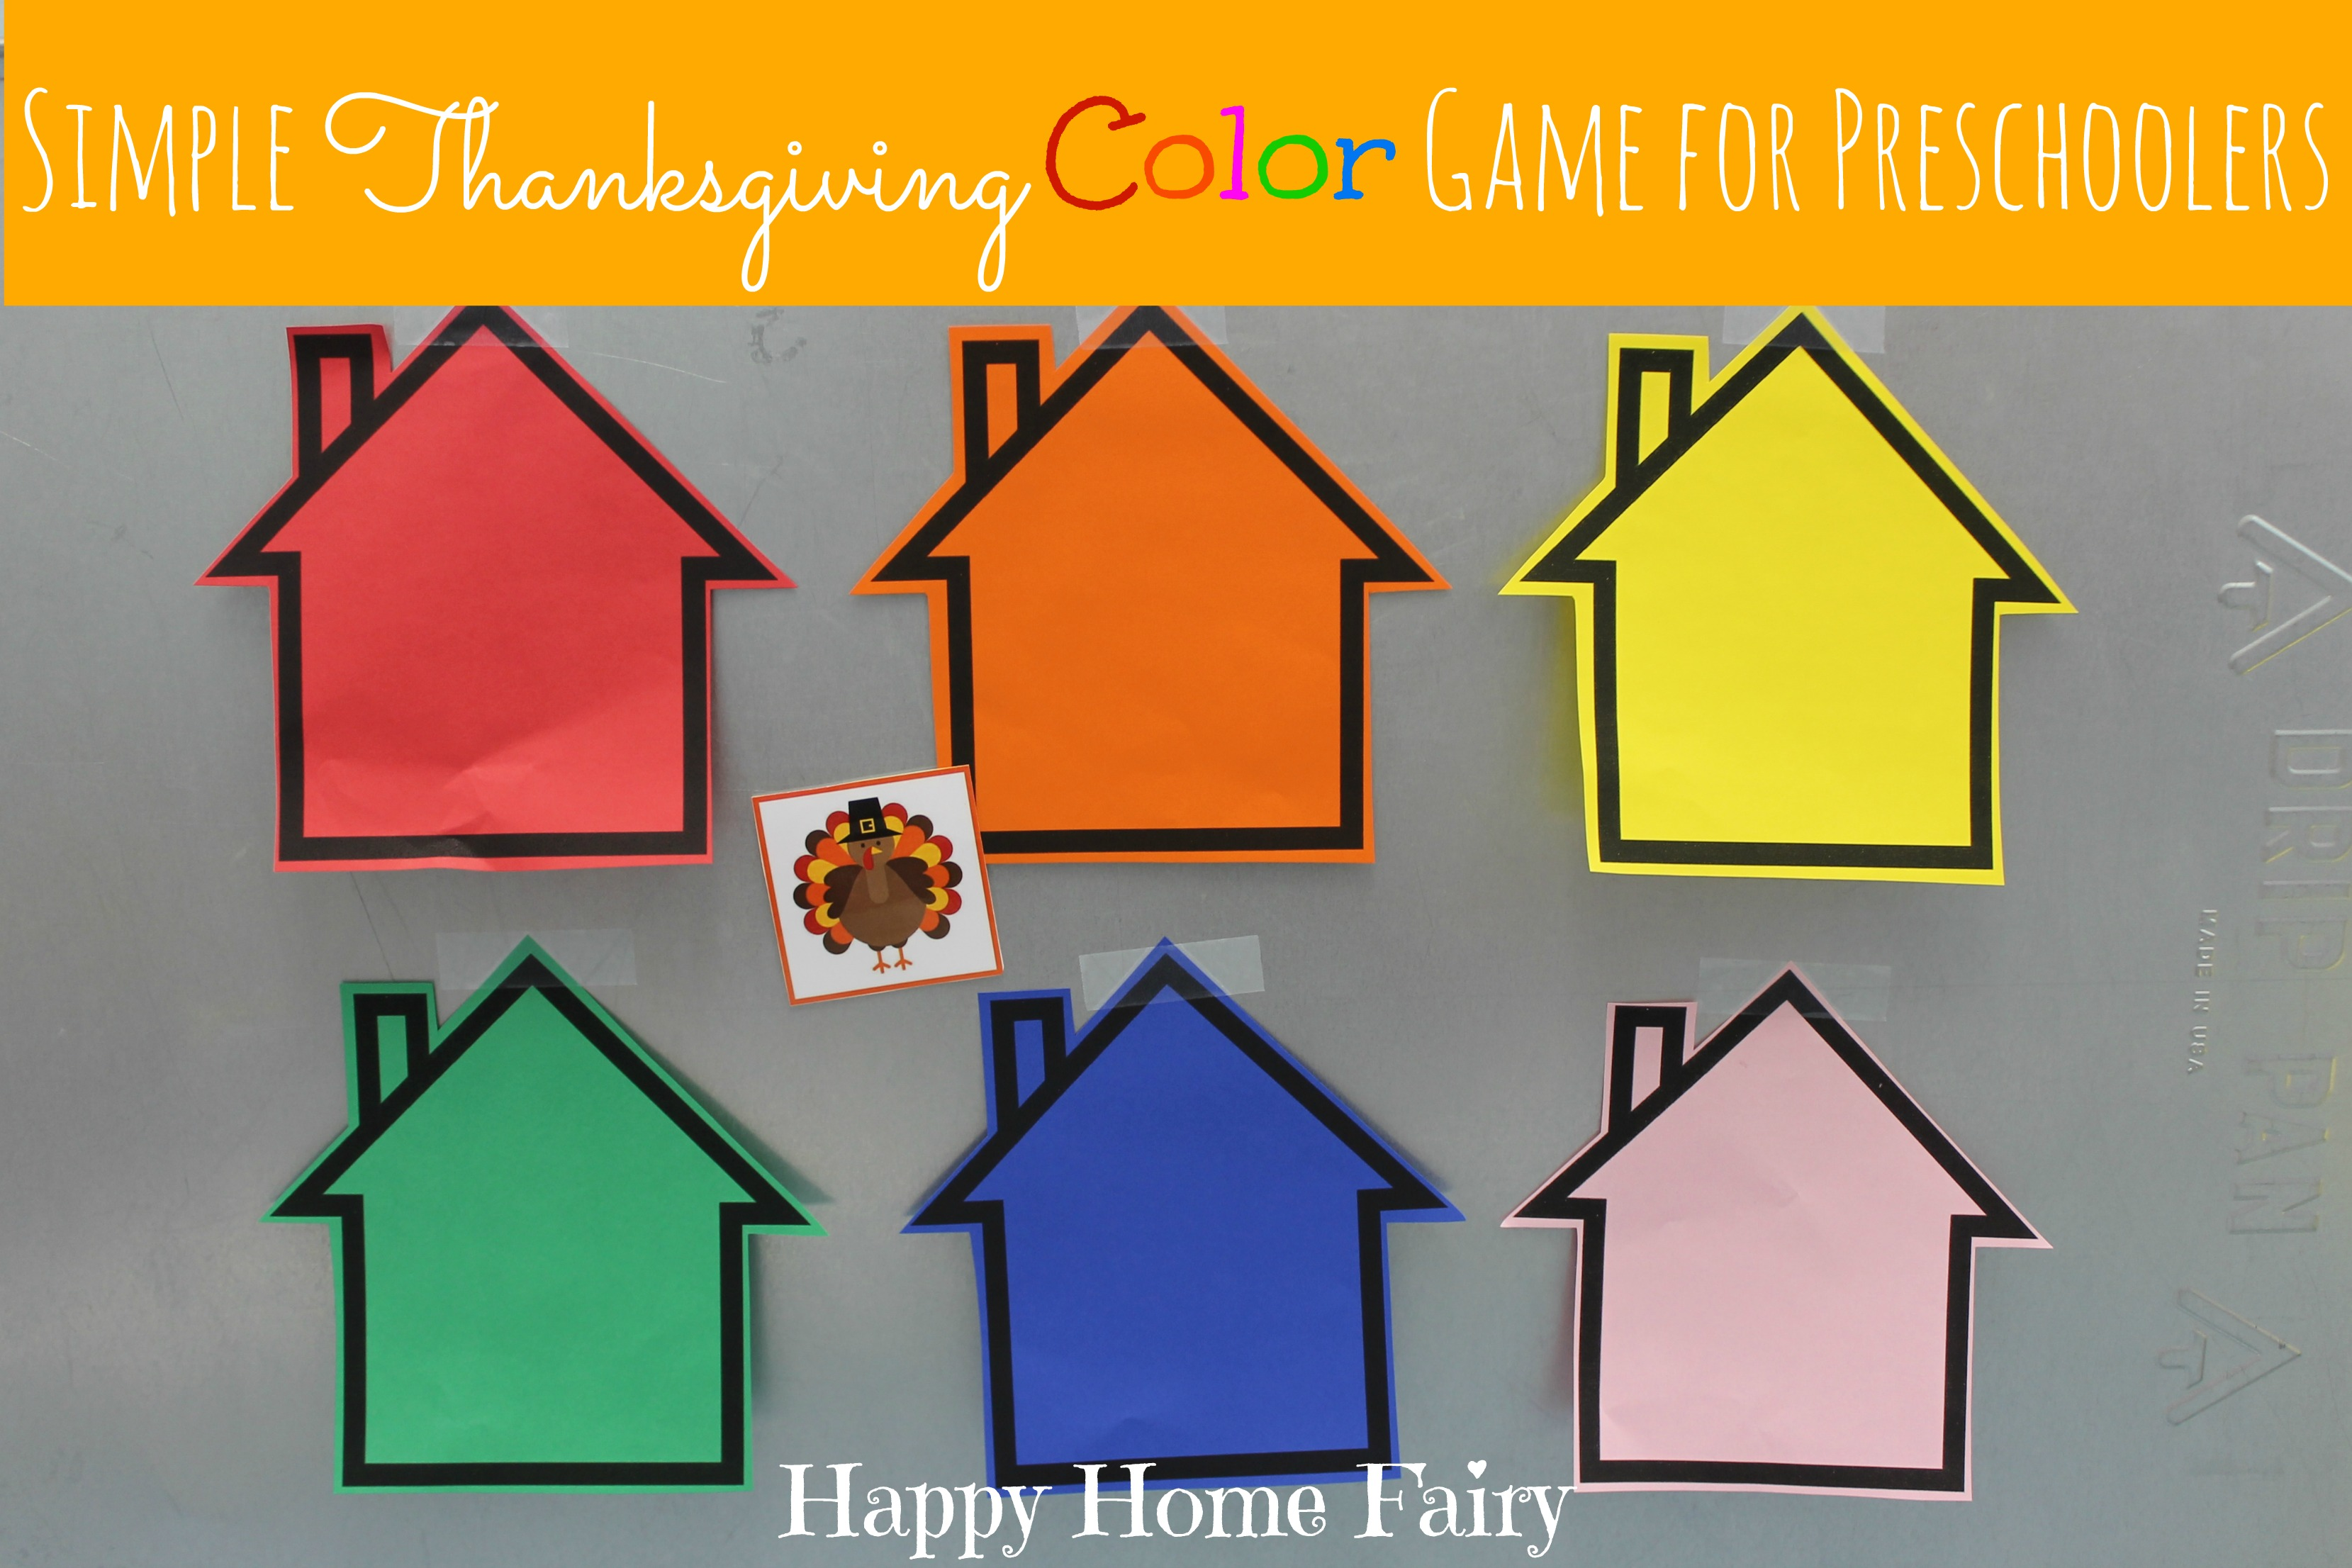 Thanksgiving coloring games online - Color Game For Preschool Simple Thanksgiving Color Game For Preschoolers